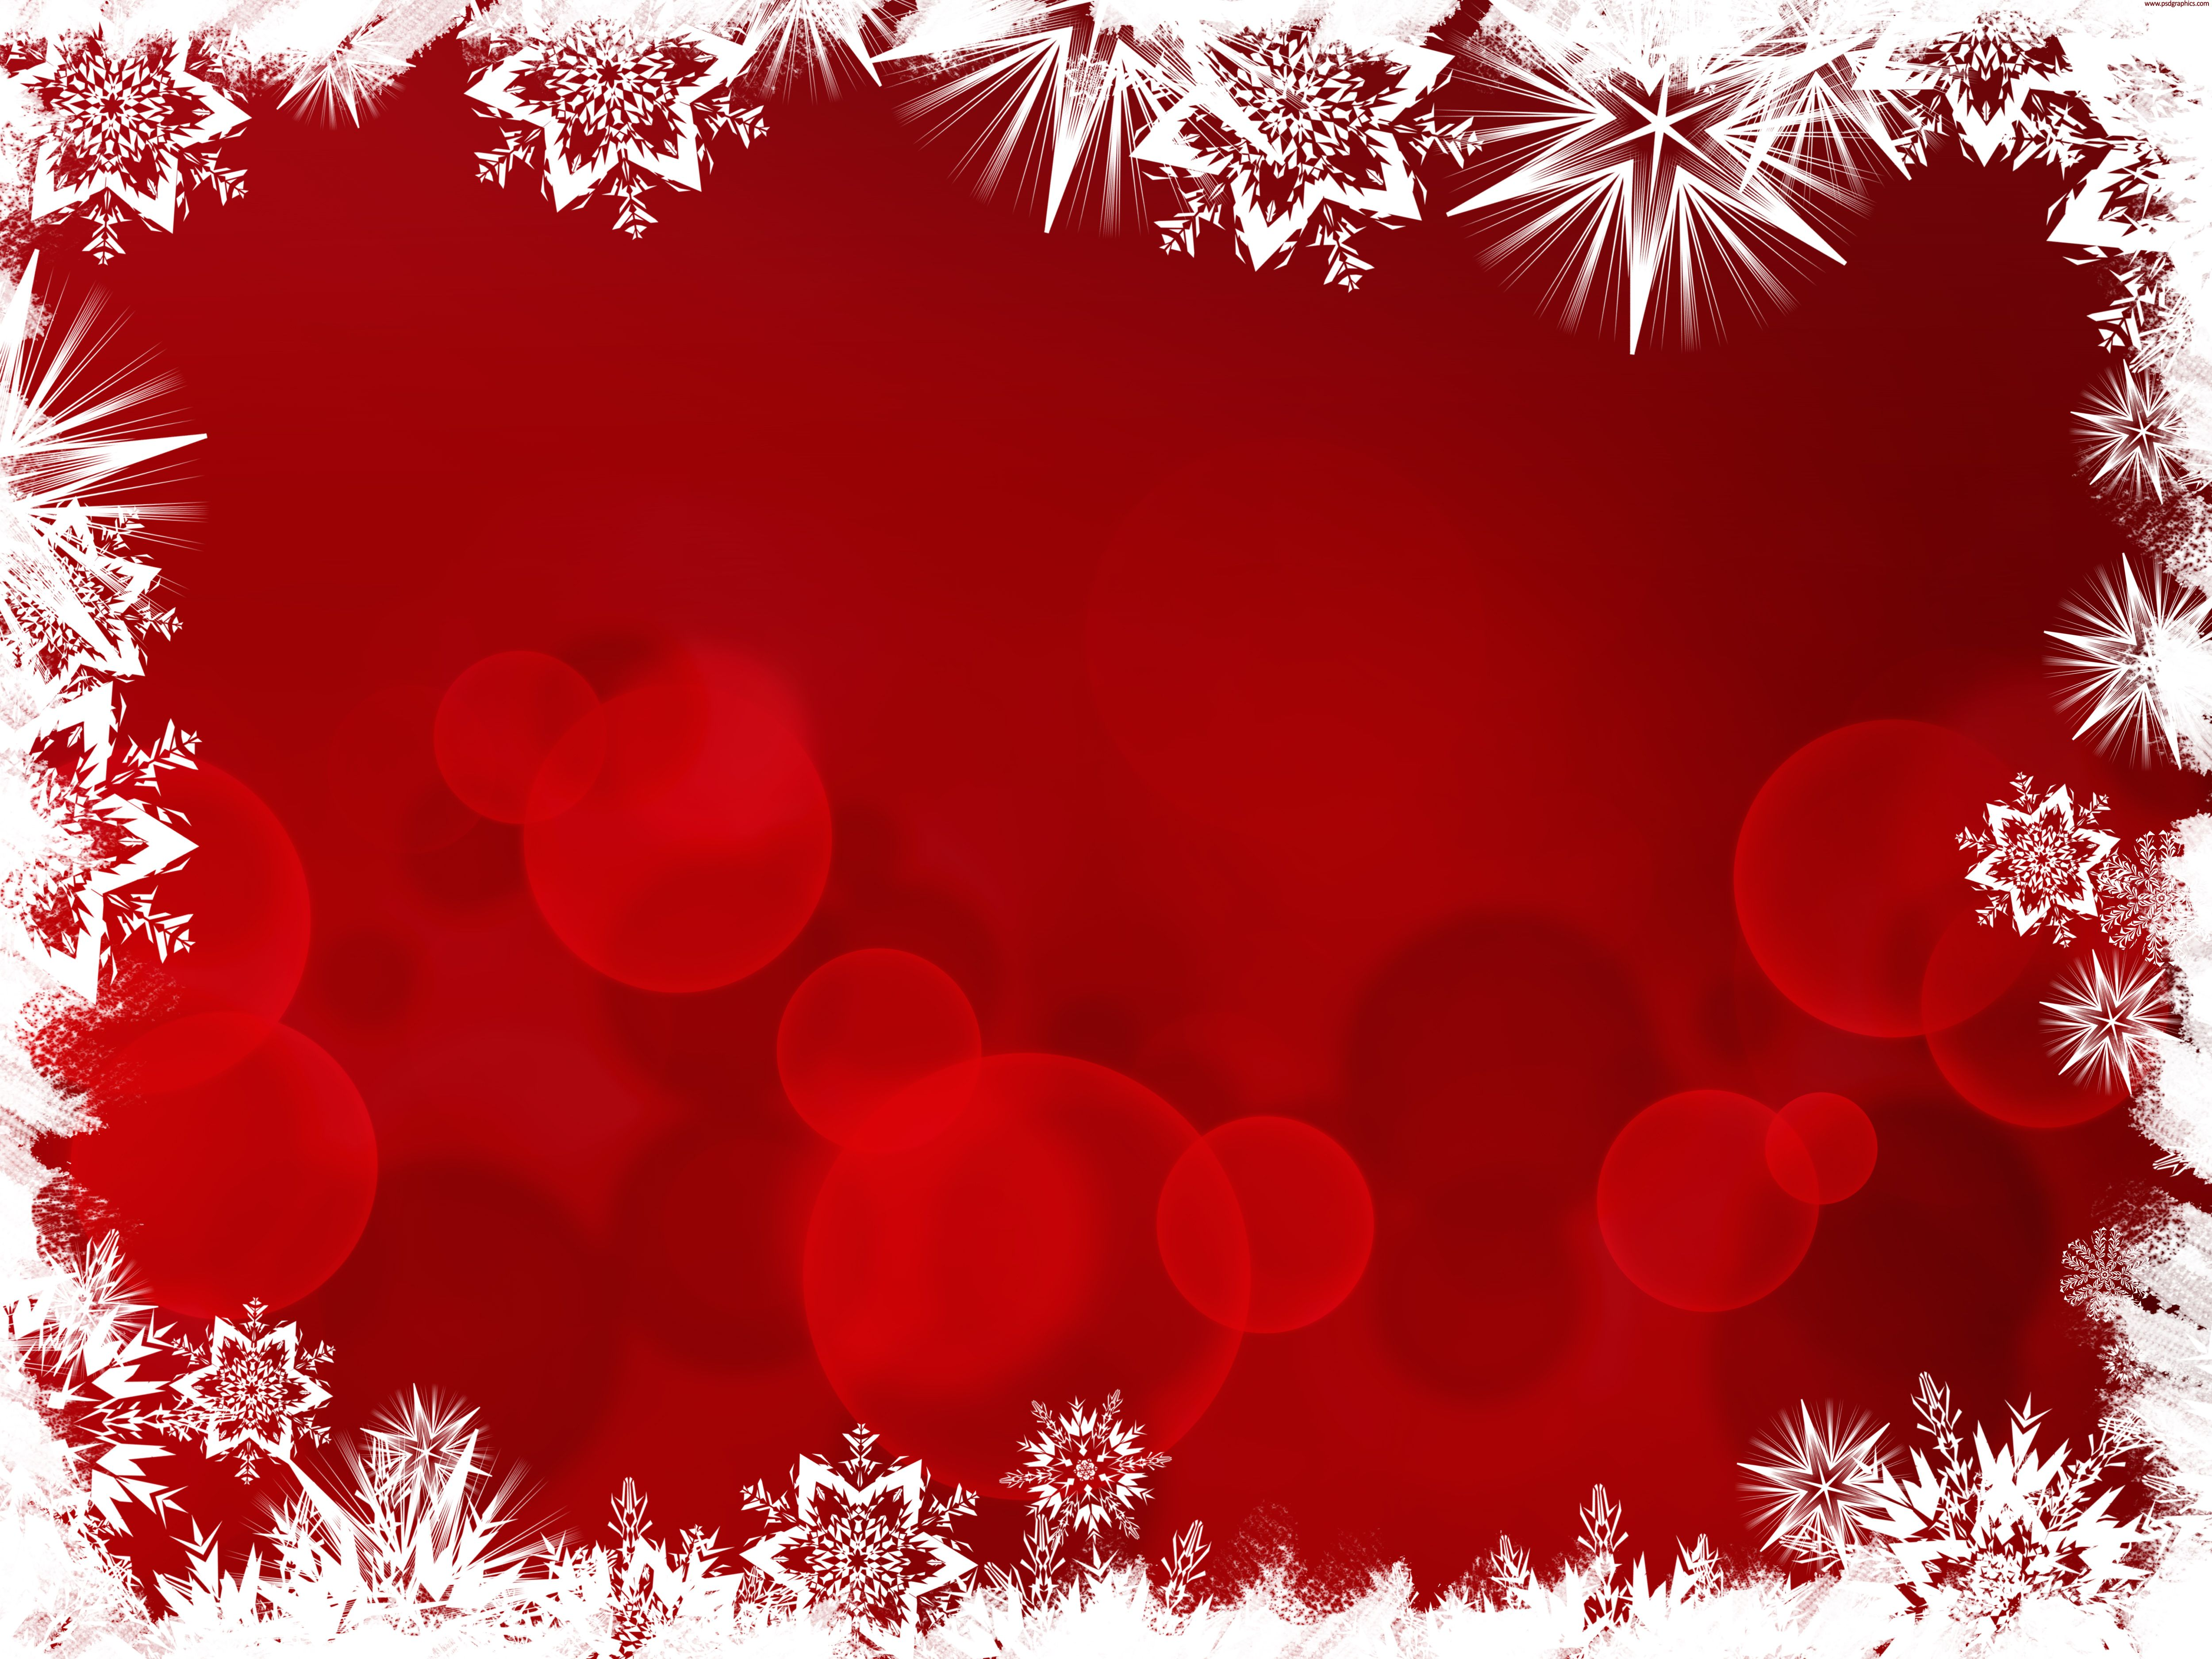 Blank Backdrops Blank Christmas Background Remeliai Pinterest